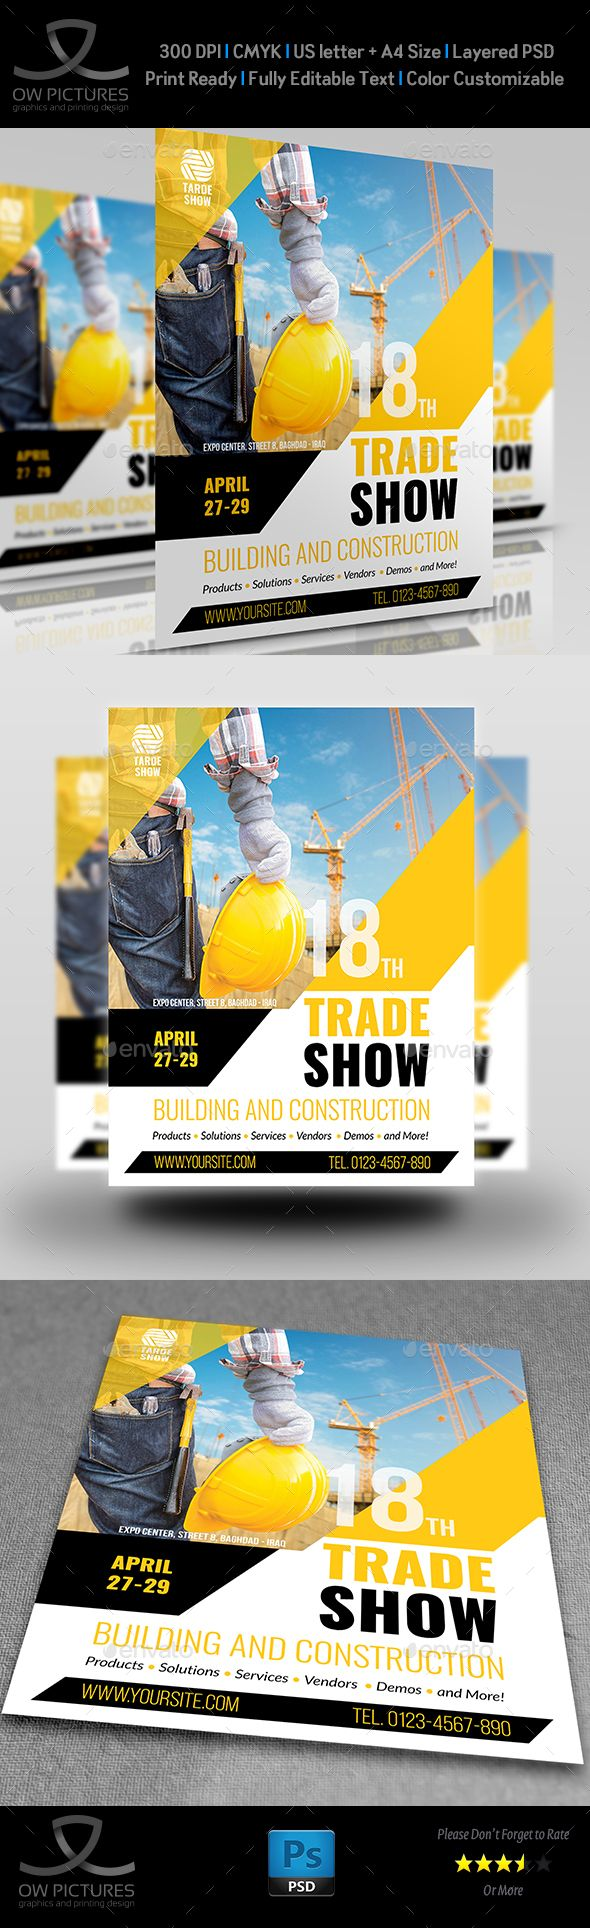 Trade Show Flyer Template PSD